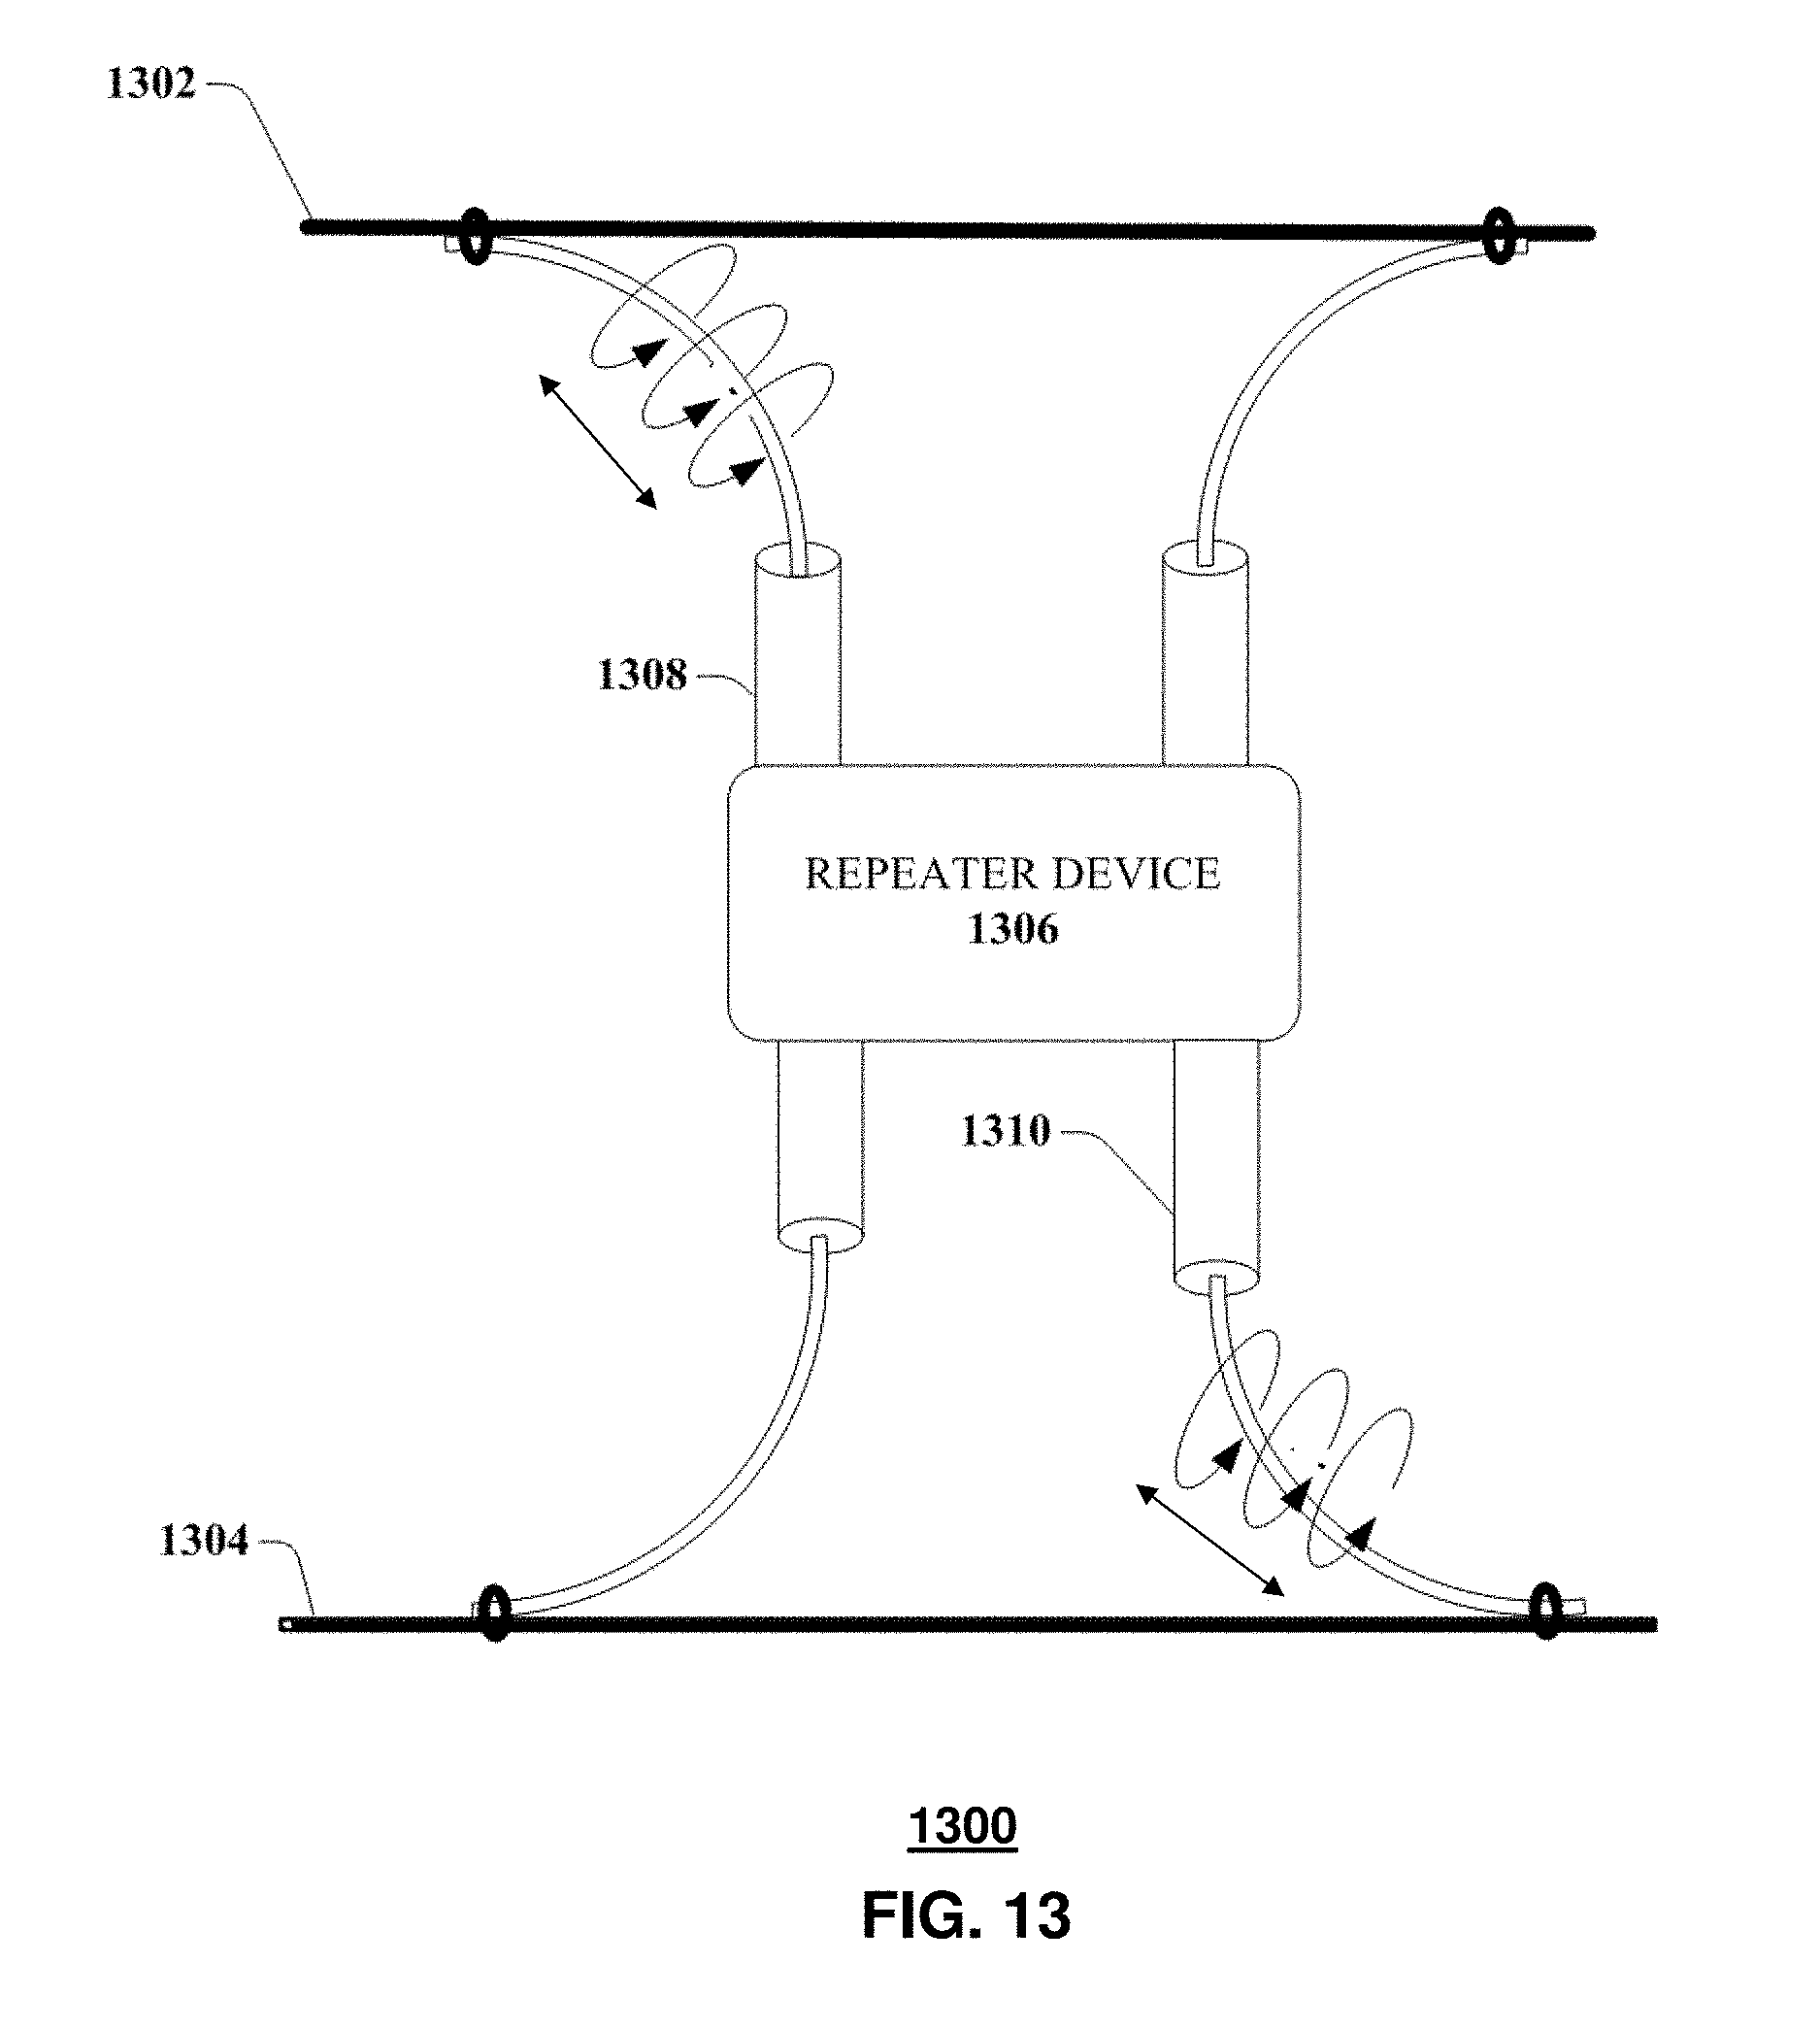 us9748626b2 plurality of cables having different cross sectional Comcast X1 us9748626b2 plurality of cables having different cross sectional shapes which are bundled together to form a transmission medium patents